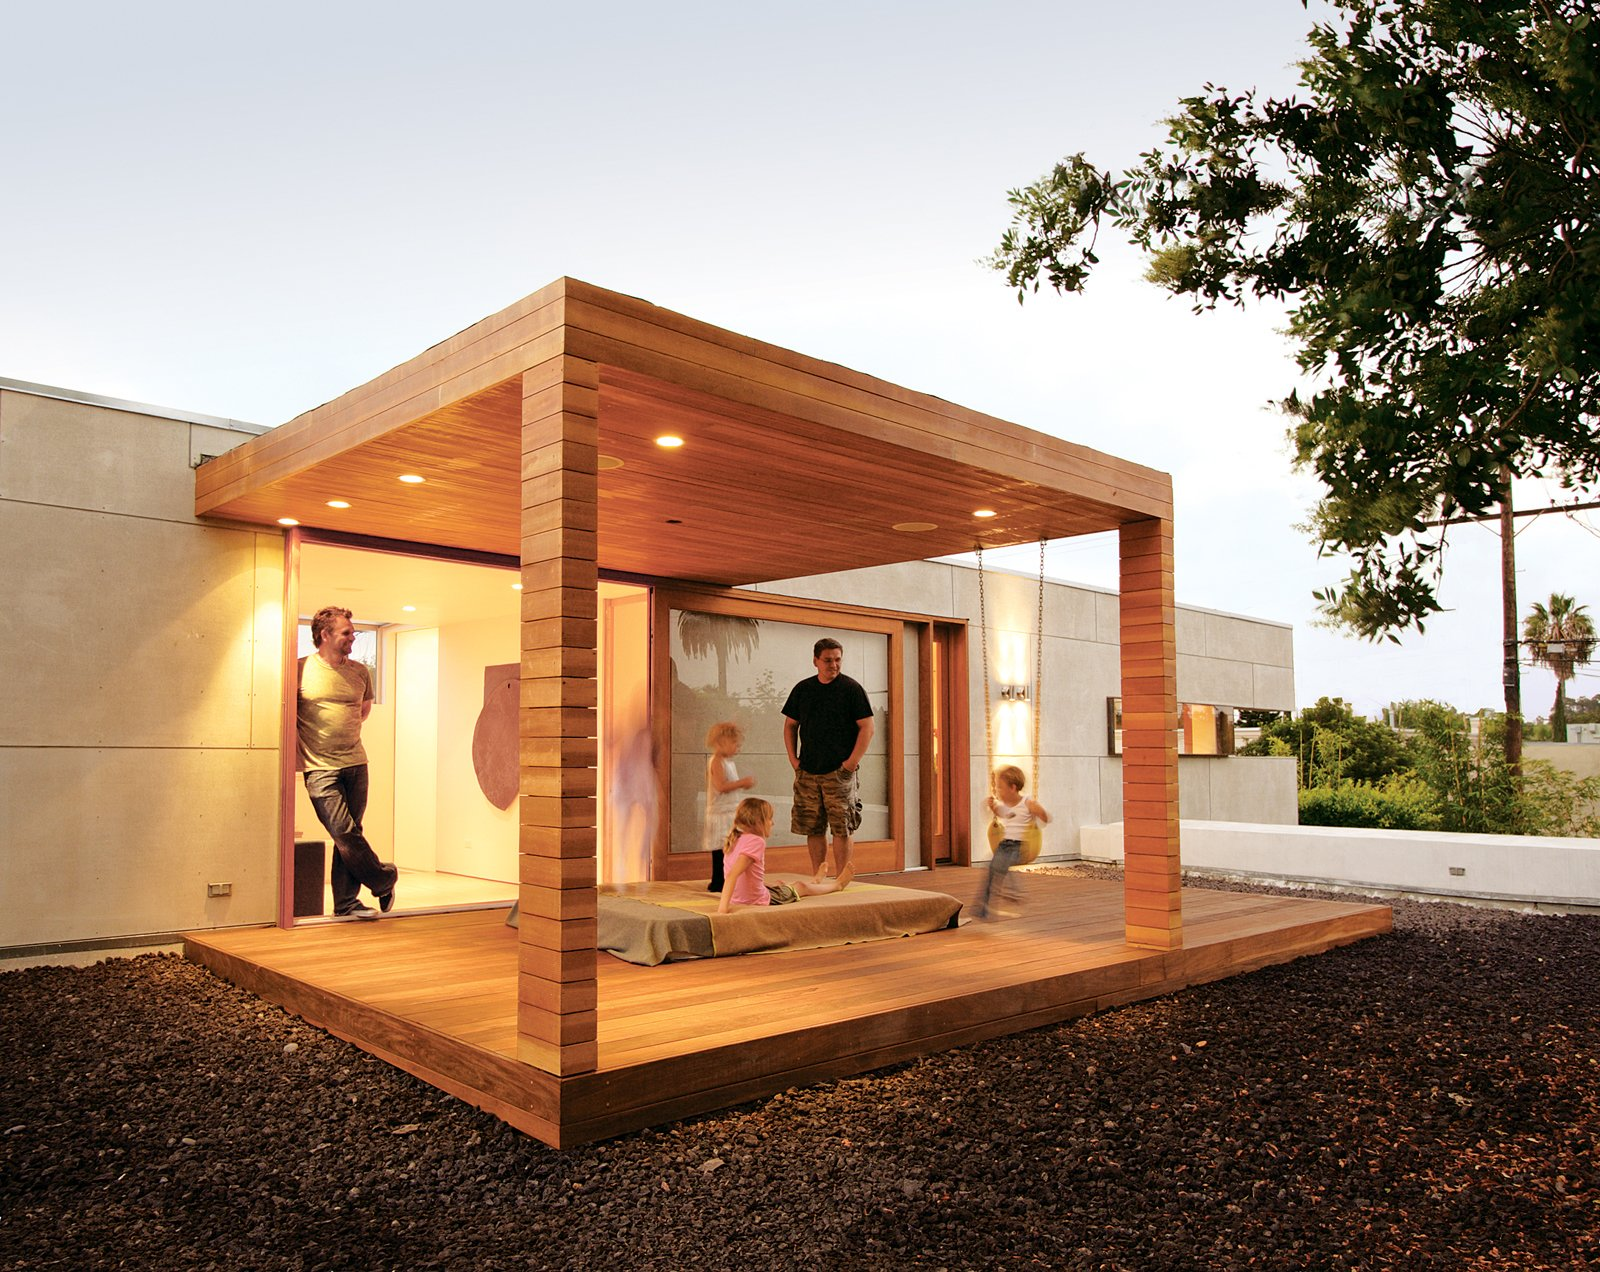 Outdoor, Small Patio, Porch, Deck, Wood Patio, Porch, Deck, Back Yard, Hardscapes, and Trees Thorsteinsson (above left, standing in doorway) relaxes with his daughter Carmen   Inga (standing) and friends on the outdoor sleeping pavilion. The platform is surrounded by   black lava rock, which acts as a deterrent to keep children away from the edge of the second-story deck.  Photo 2 of 5 in Building Green in Santa Monica